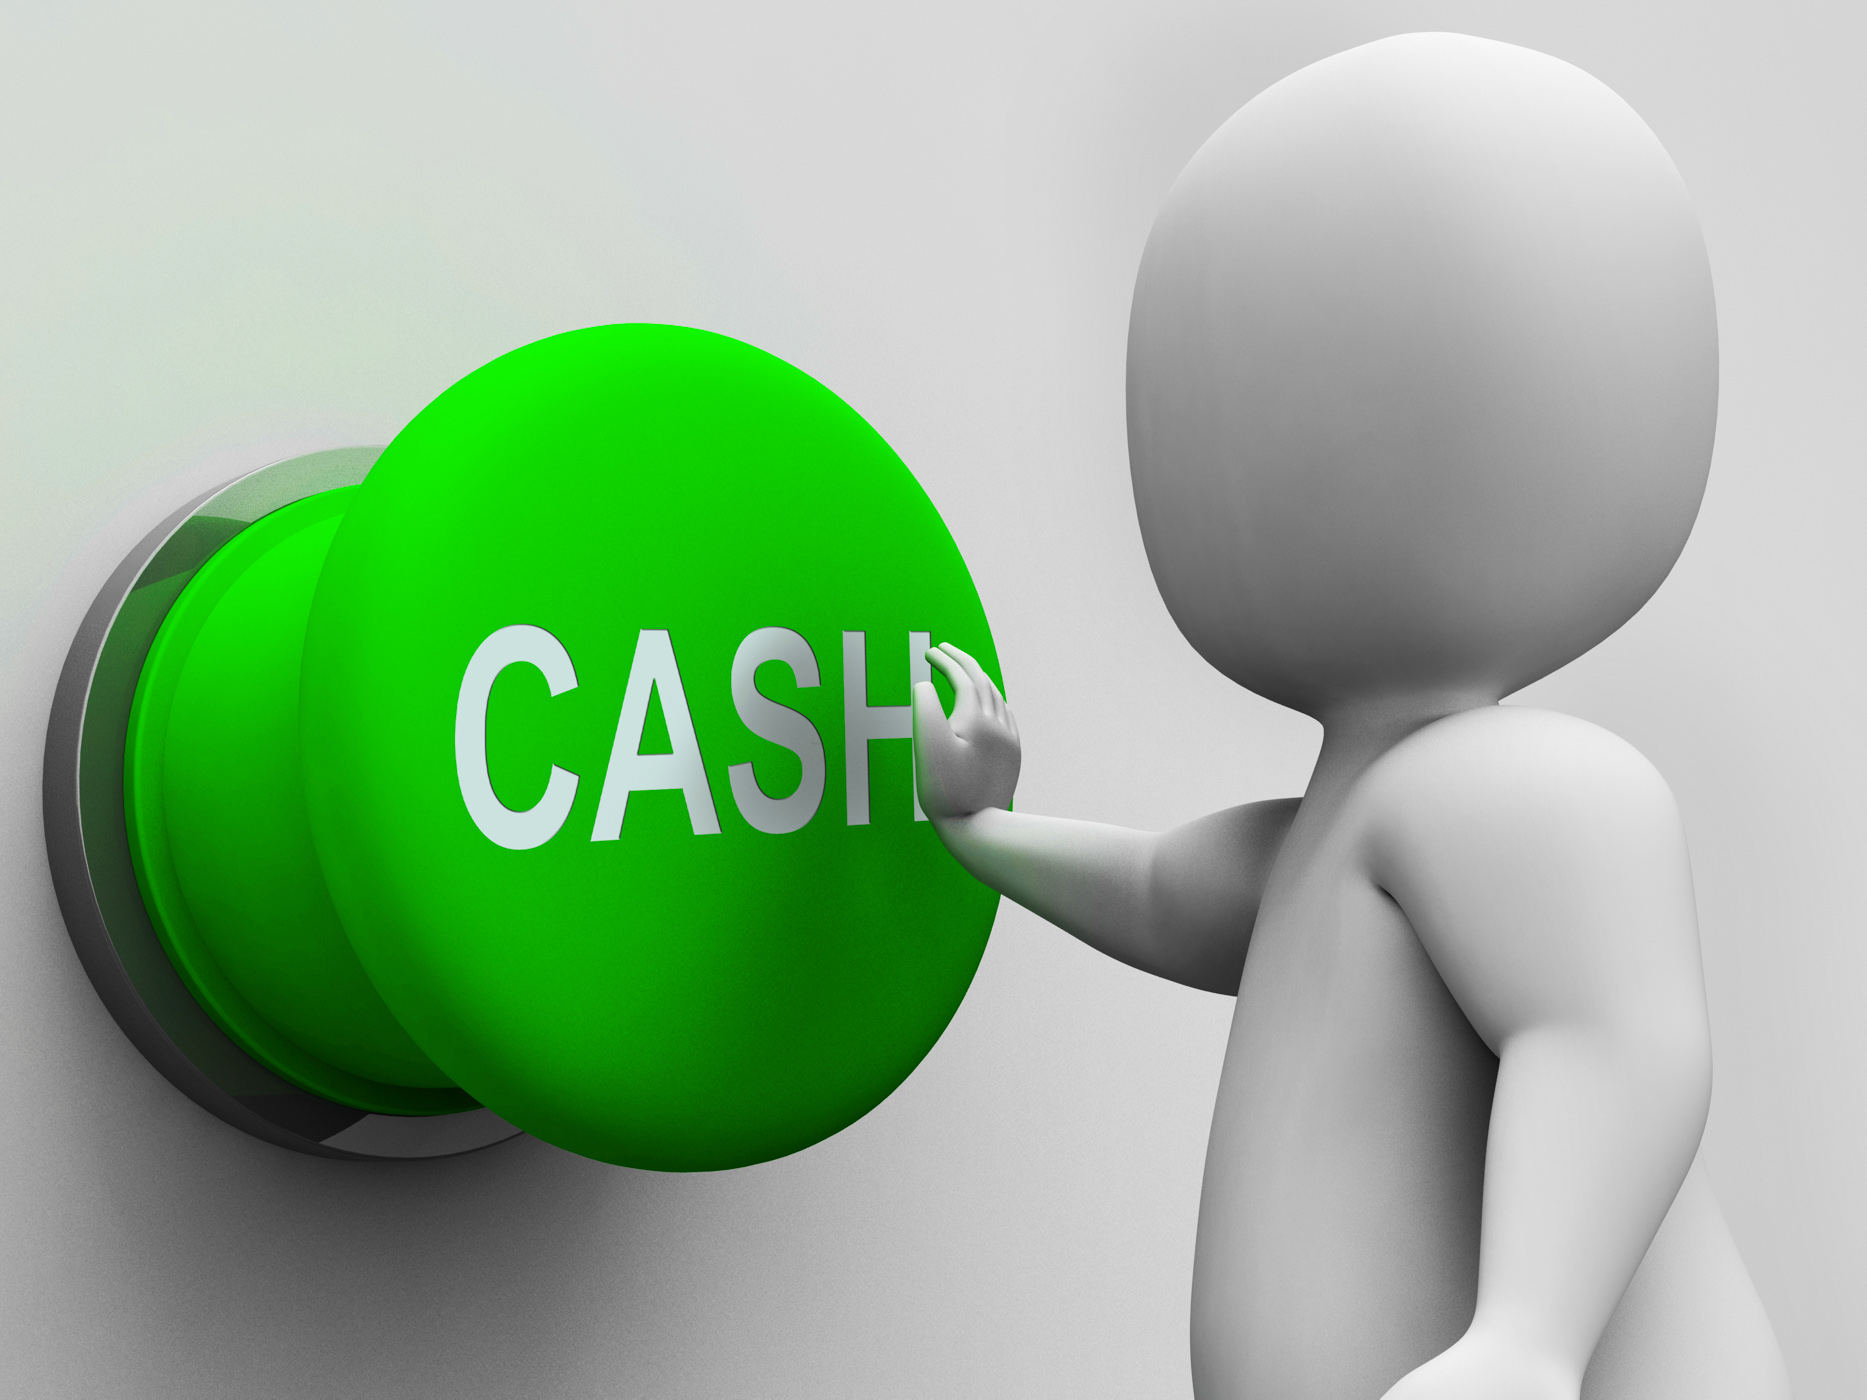 Cash Button Shows Money Earning And Spending, Loan, Spending, Spend, Savings, HQ Photo